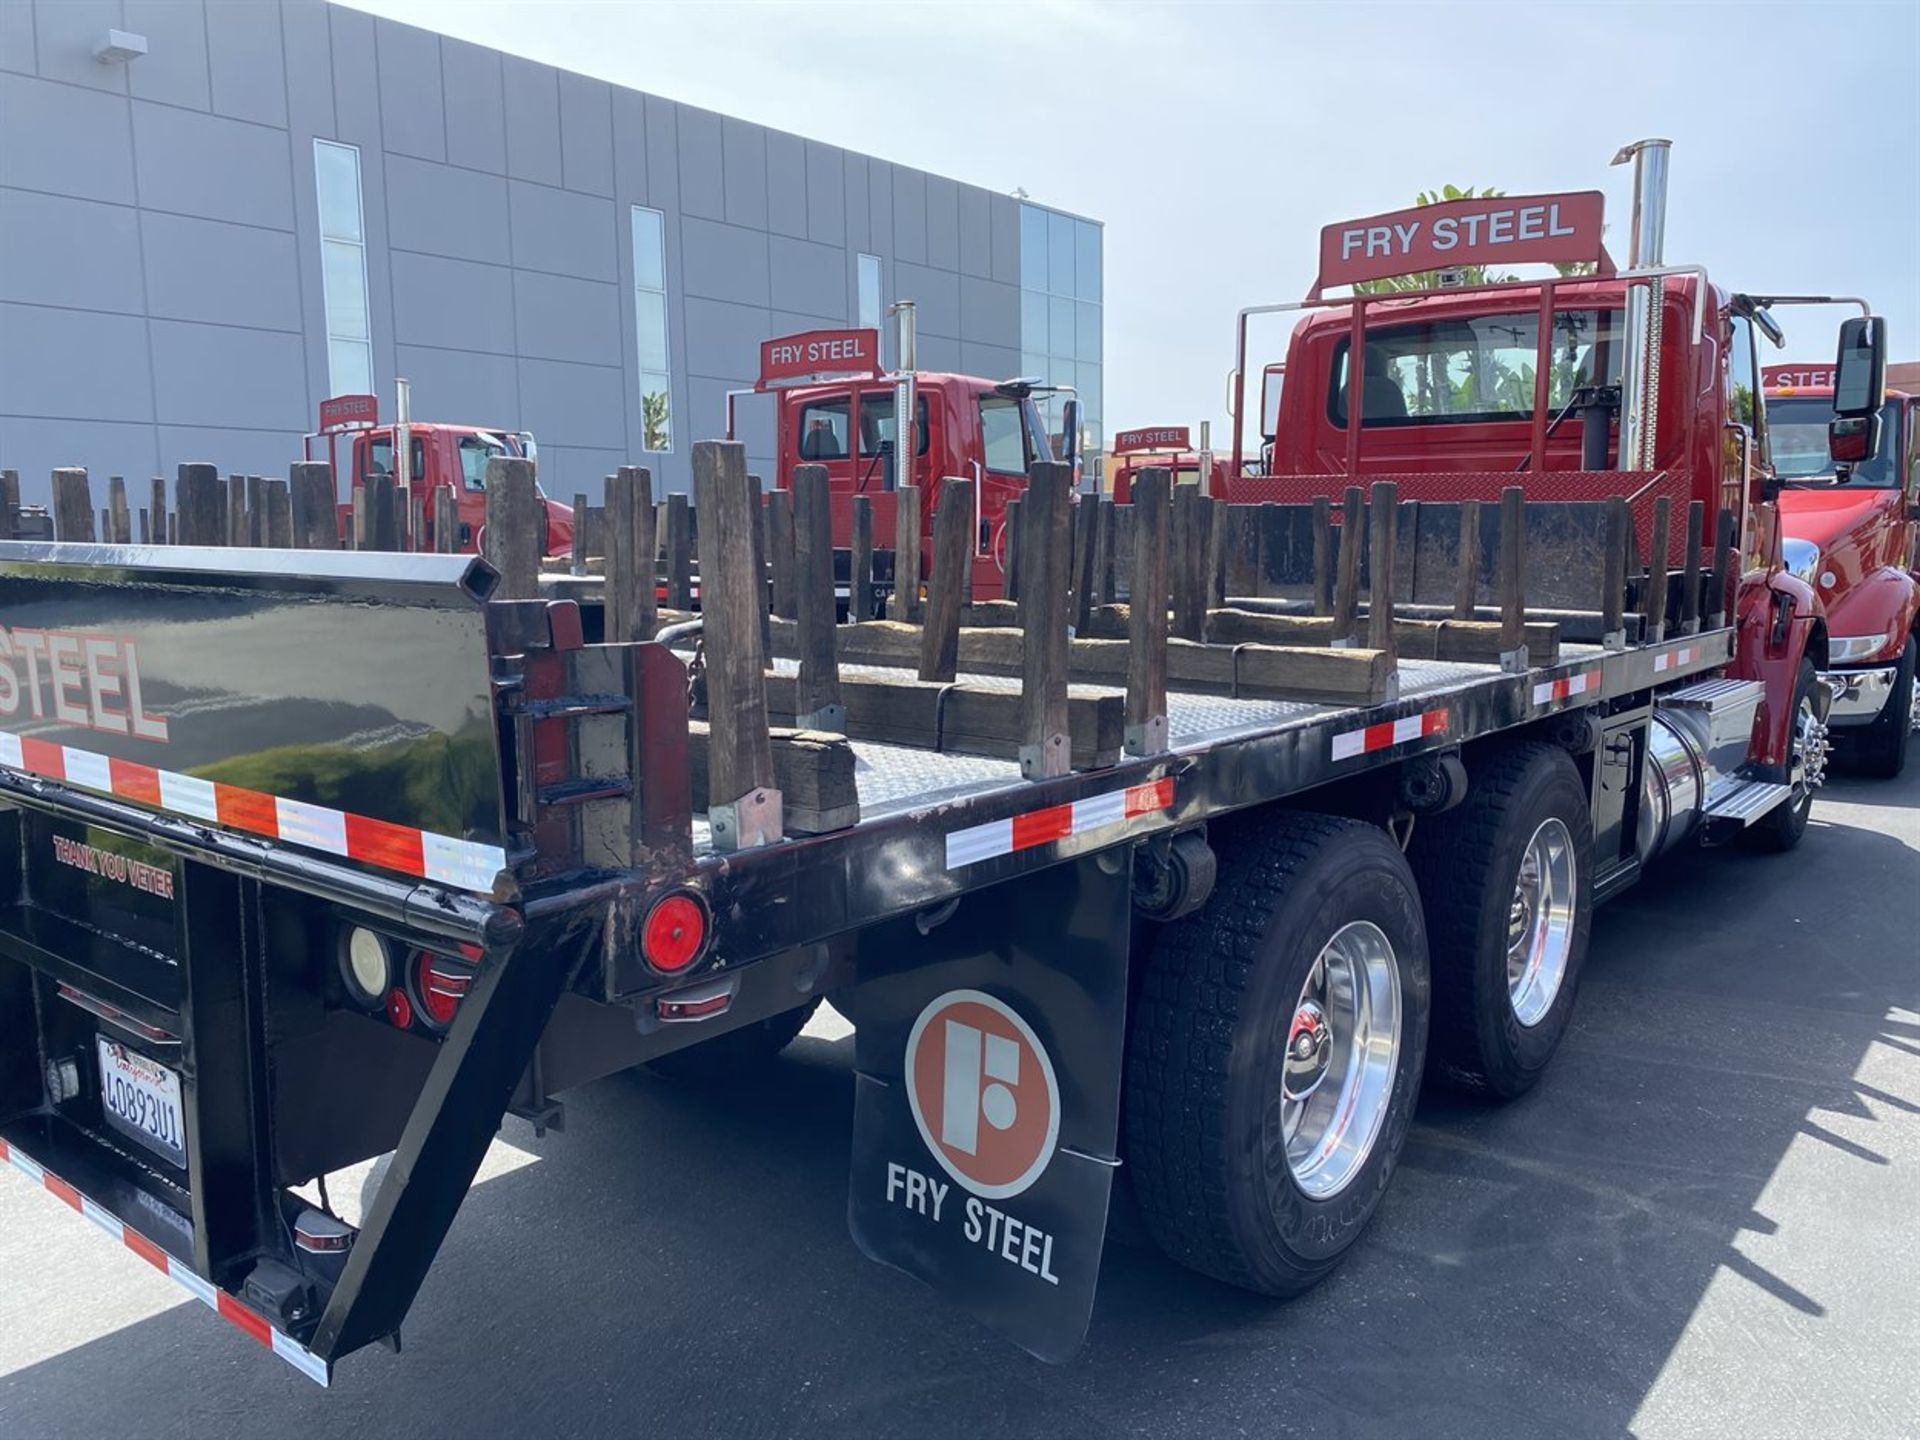 2016 INTERNATIONAL 18' Stake Bed Truck, VIN 3HTHXSNR9GN132471, 131,736 Miles at time of inspection - Image 5 of 17